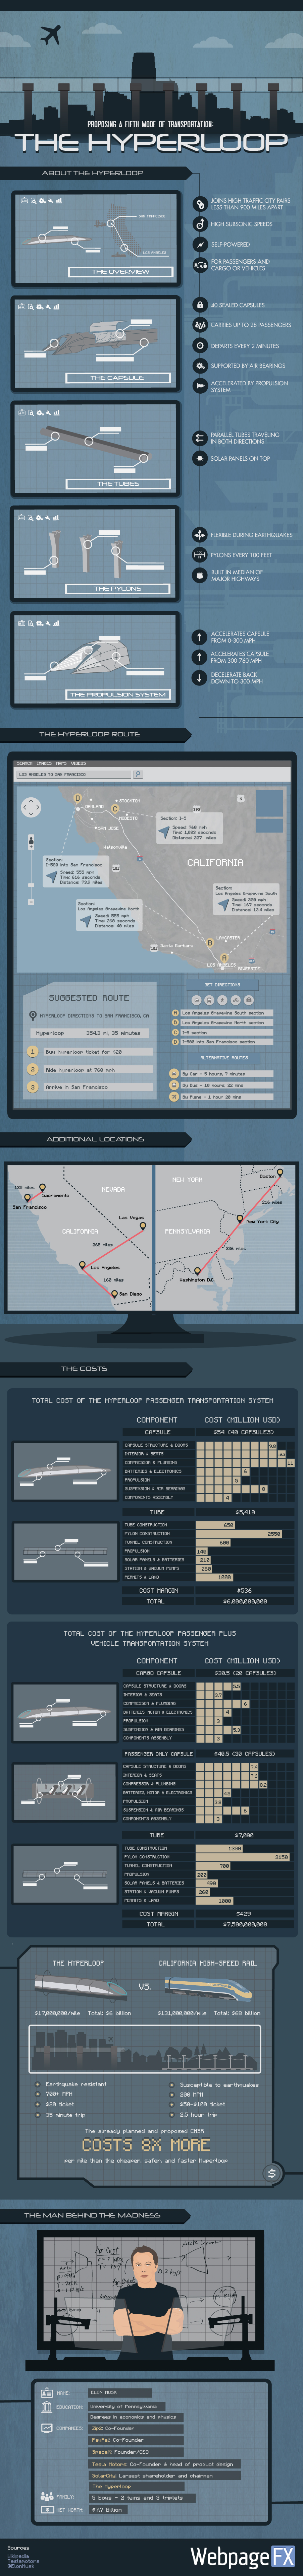 Proposing a Fifth Mode of Transportation: The Hyperloop